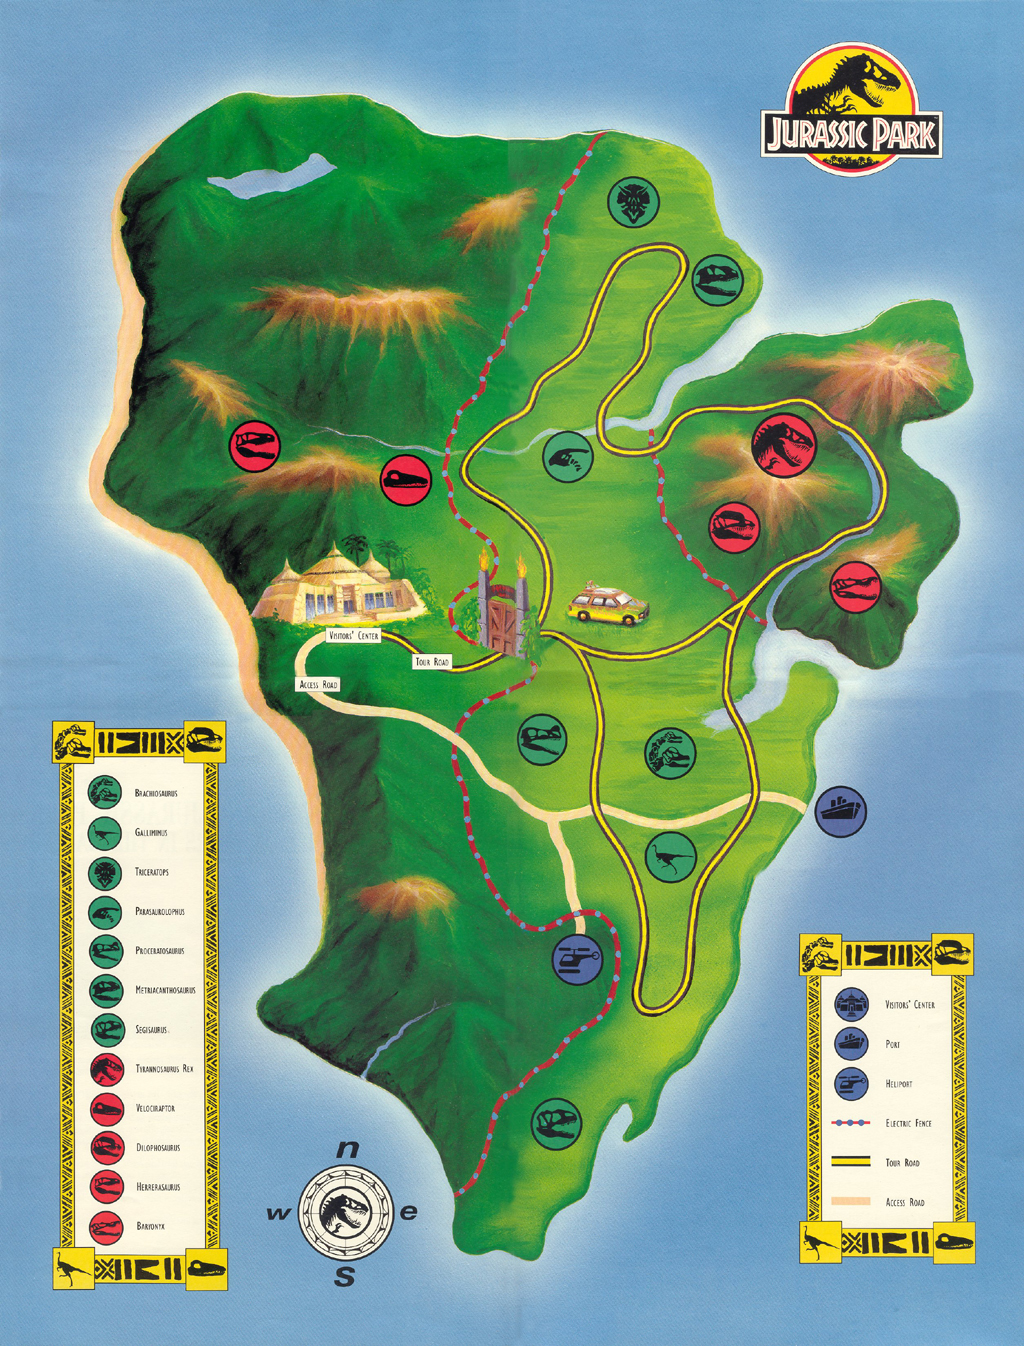 Jurassic Park Map Park Map | Jurassic Park wiki | FANDOM powered by Wikia Jurassic Park Map